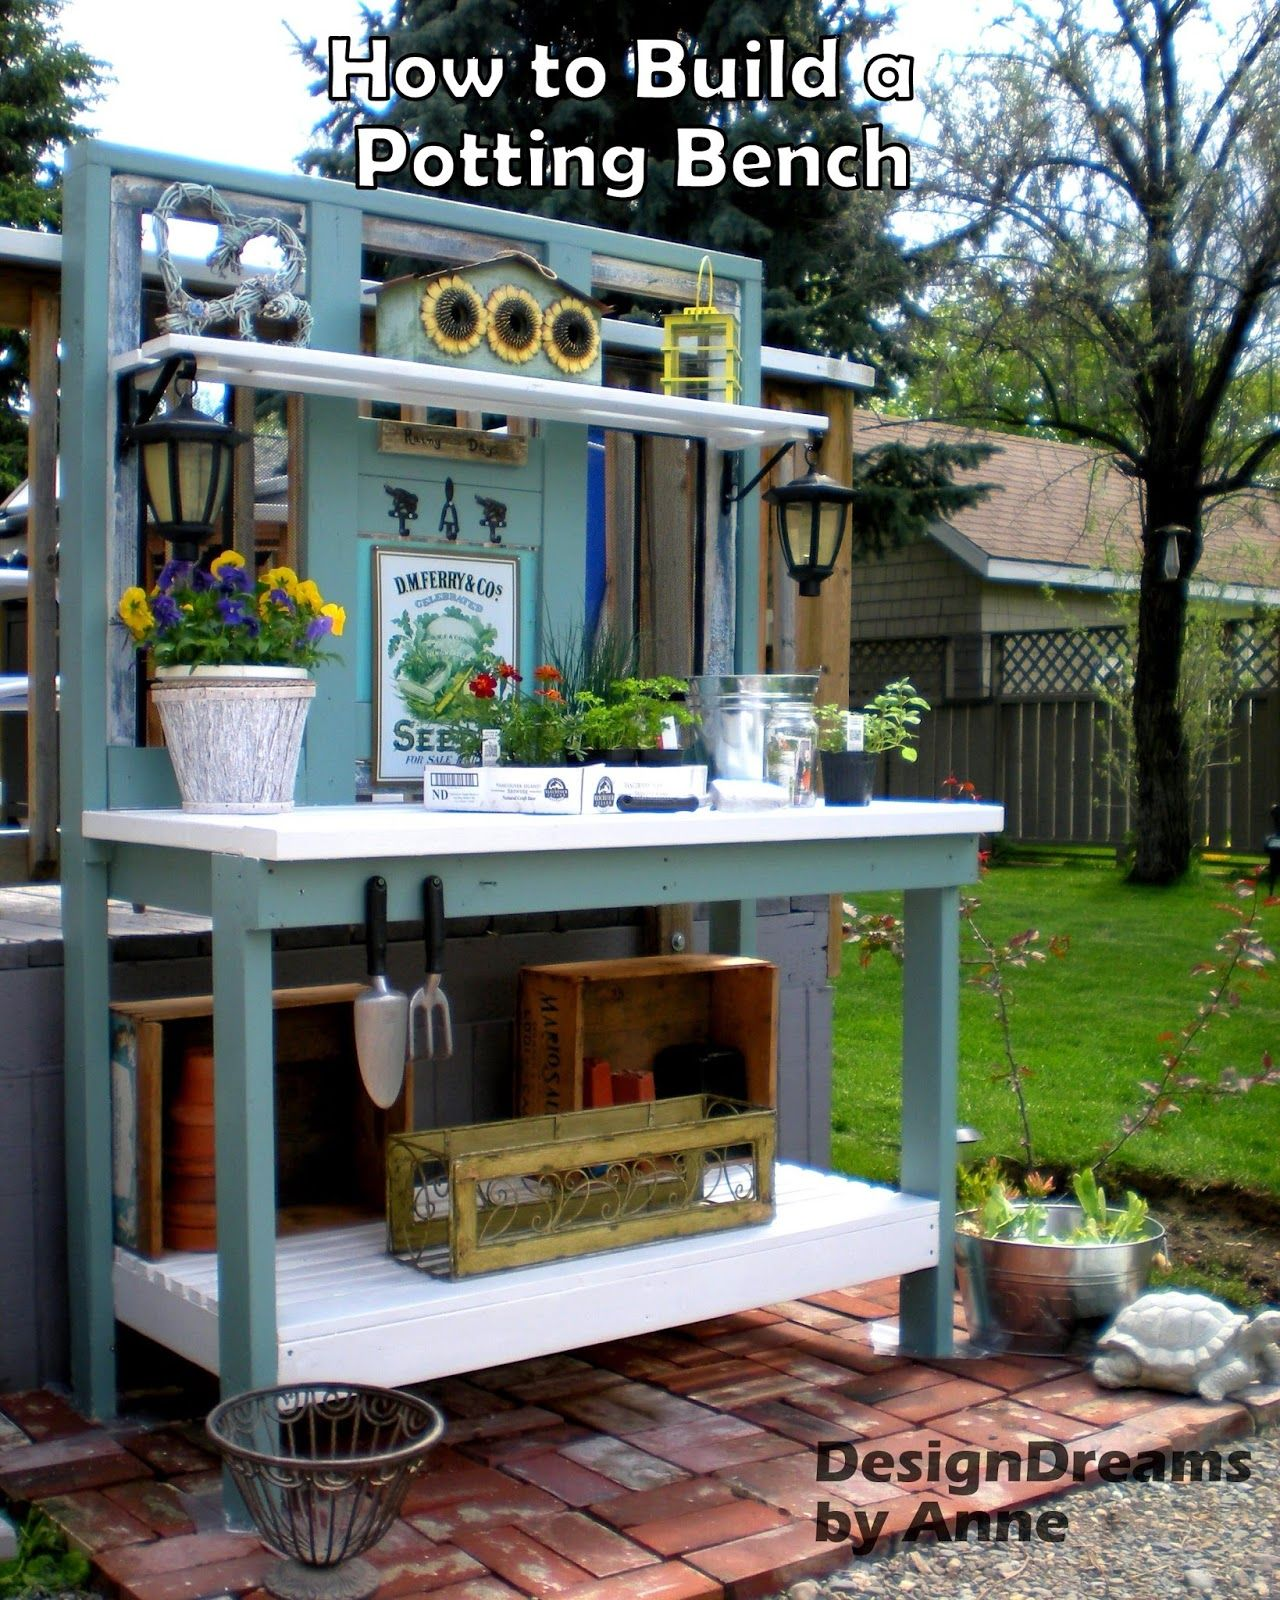 Garden Potting Bench Ideas Part - 47: How To Build A Garden Potting Bench (Plans Included)